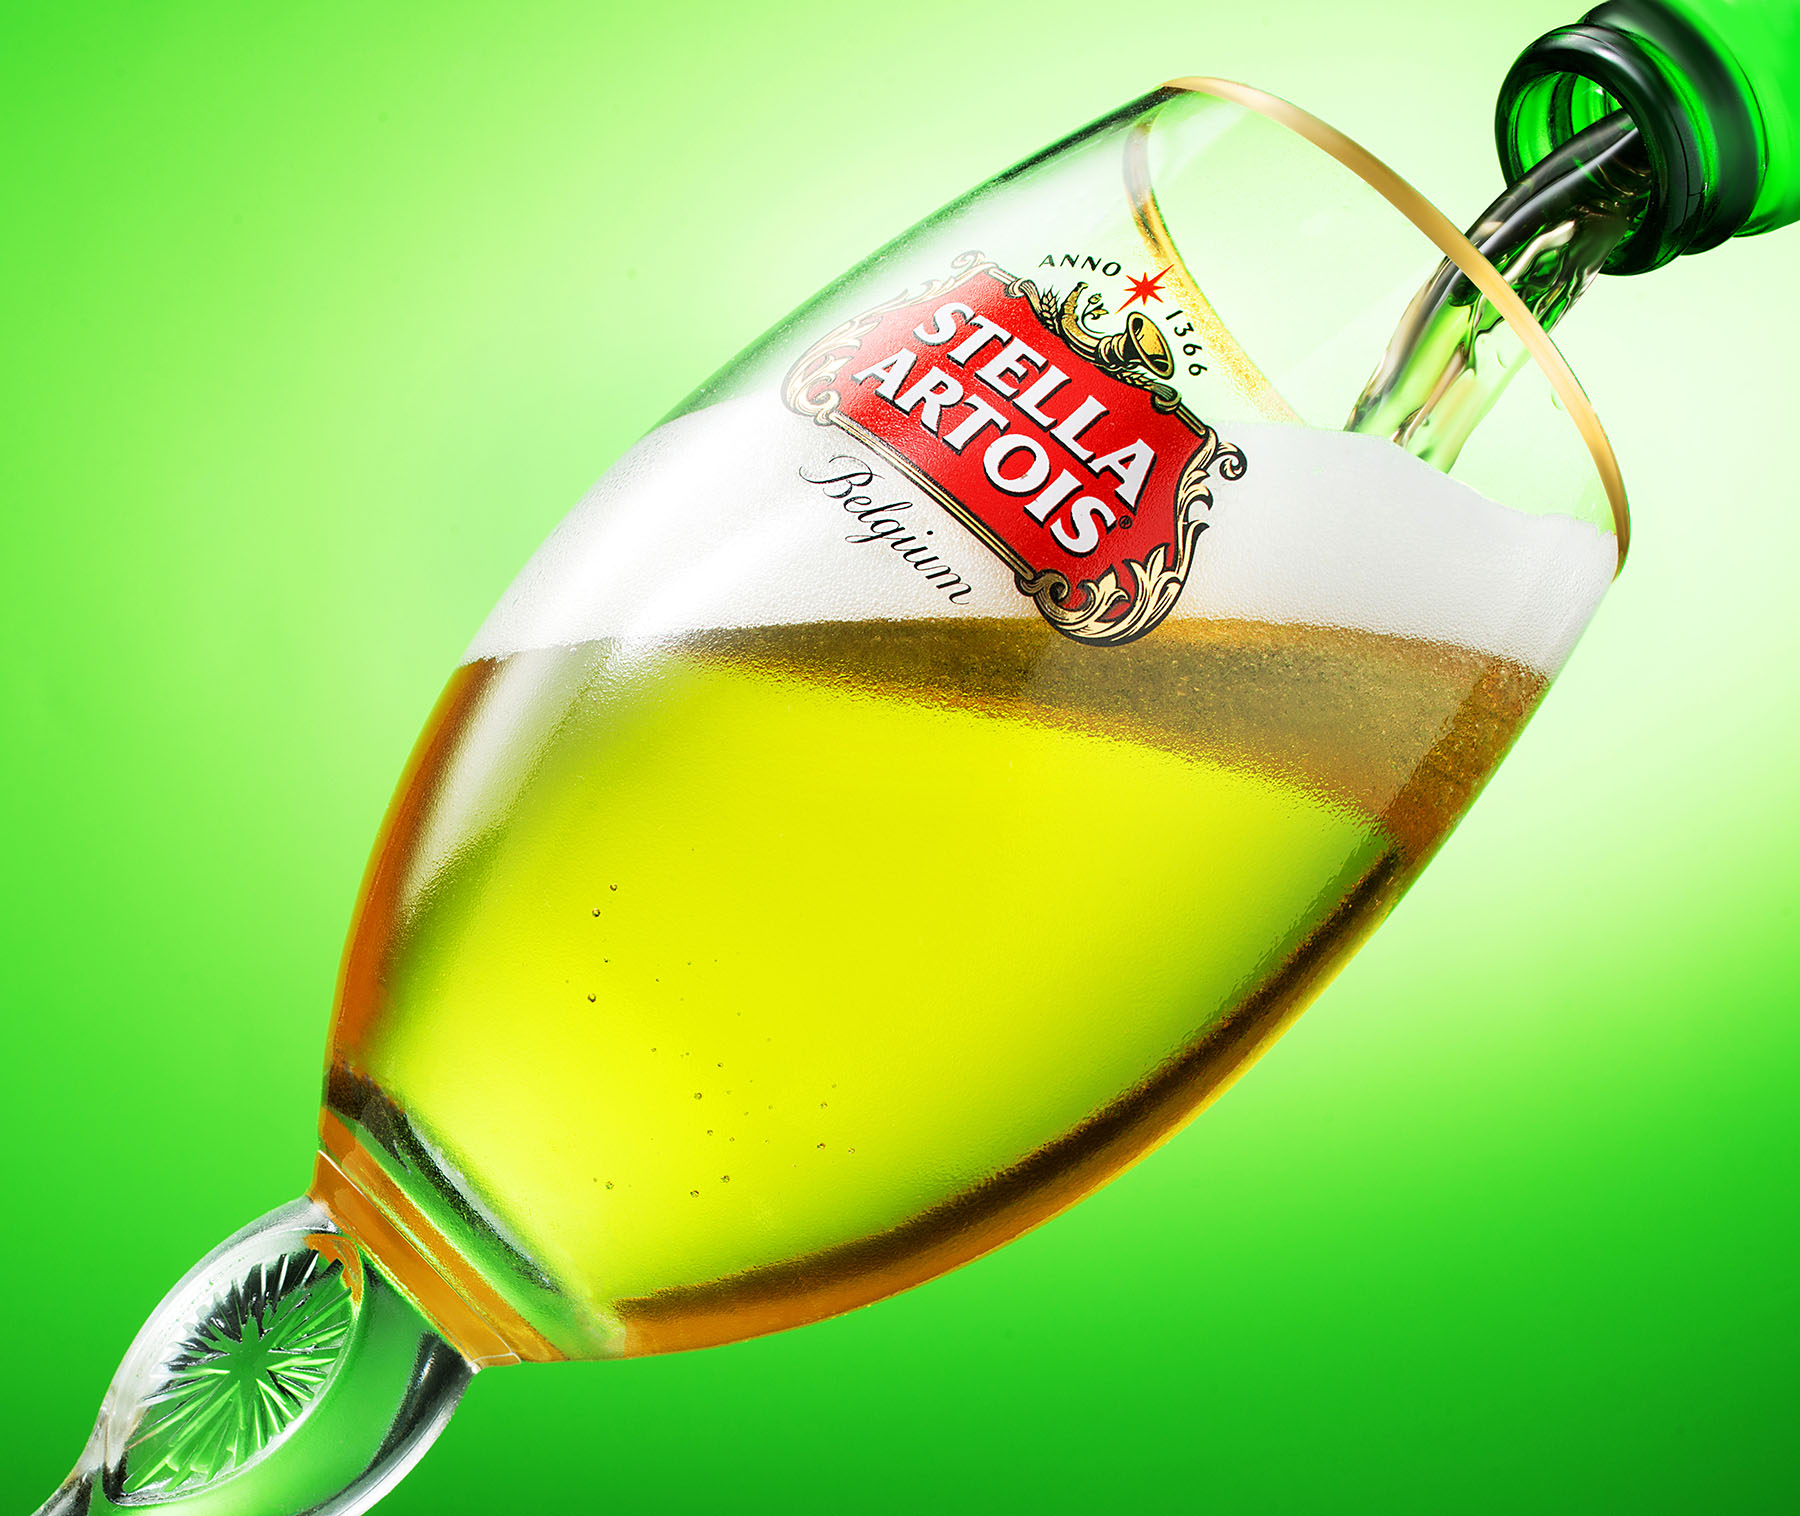 New-york-liquid-phtography-still-life-phtography-stella-Artois-pour